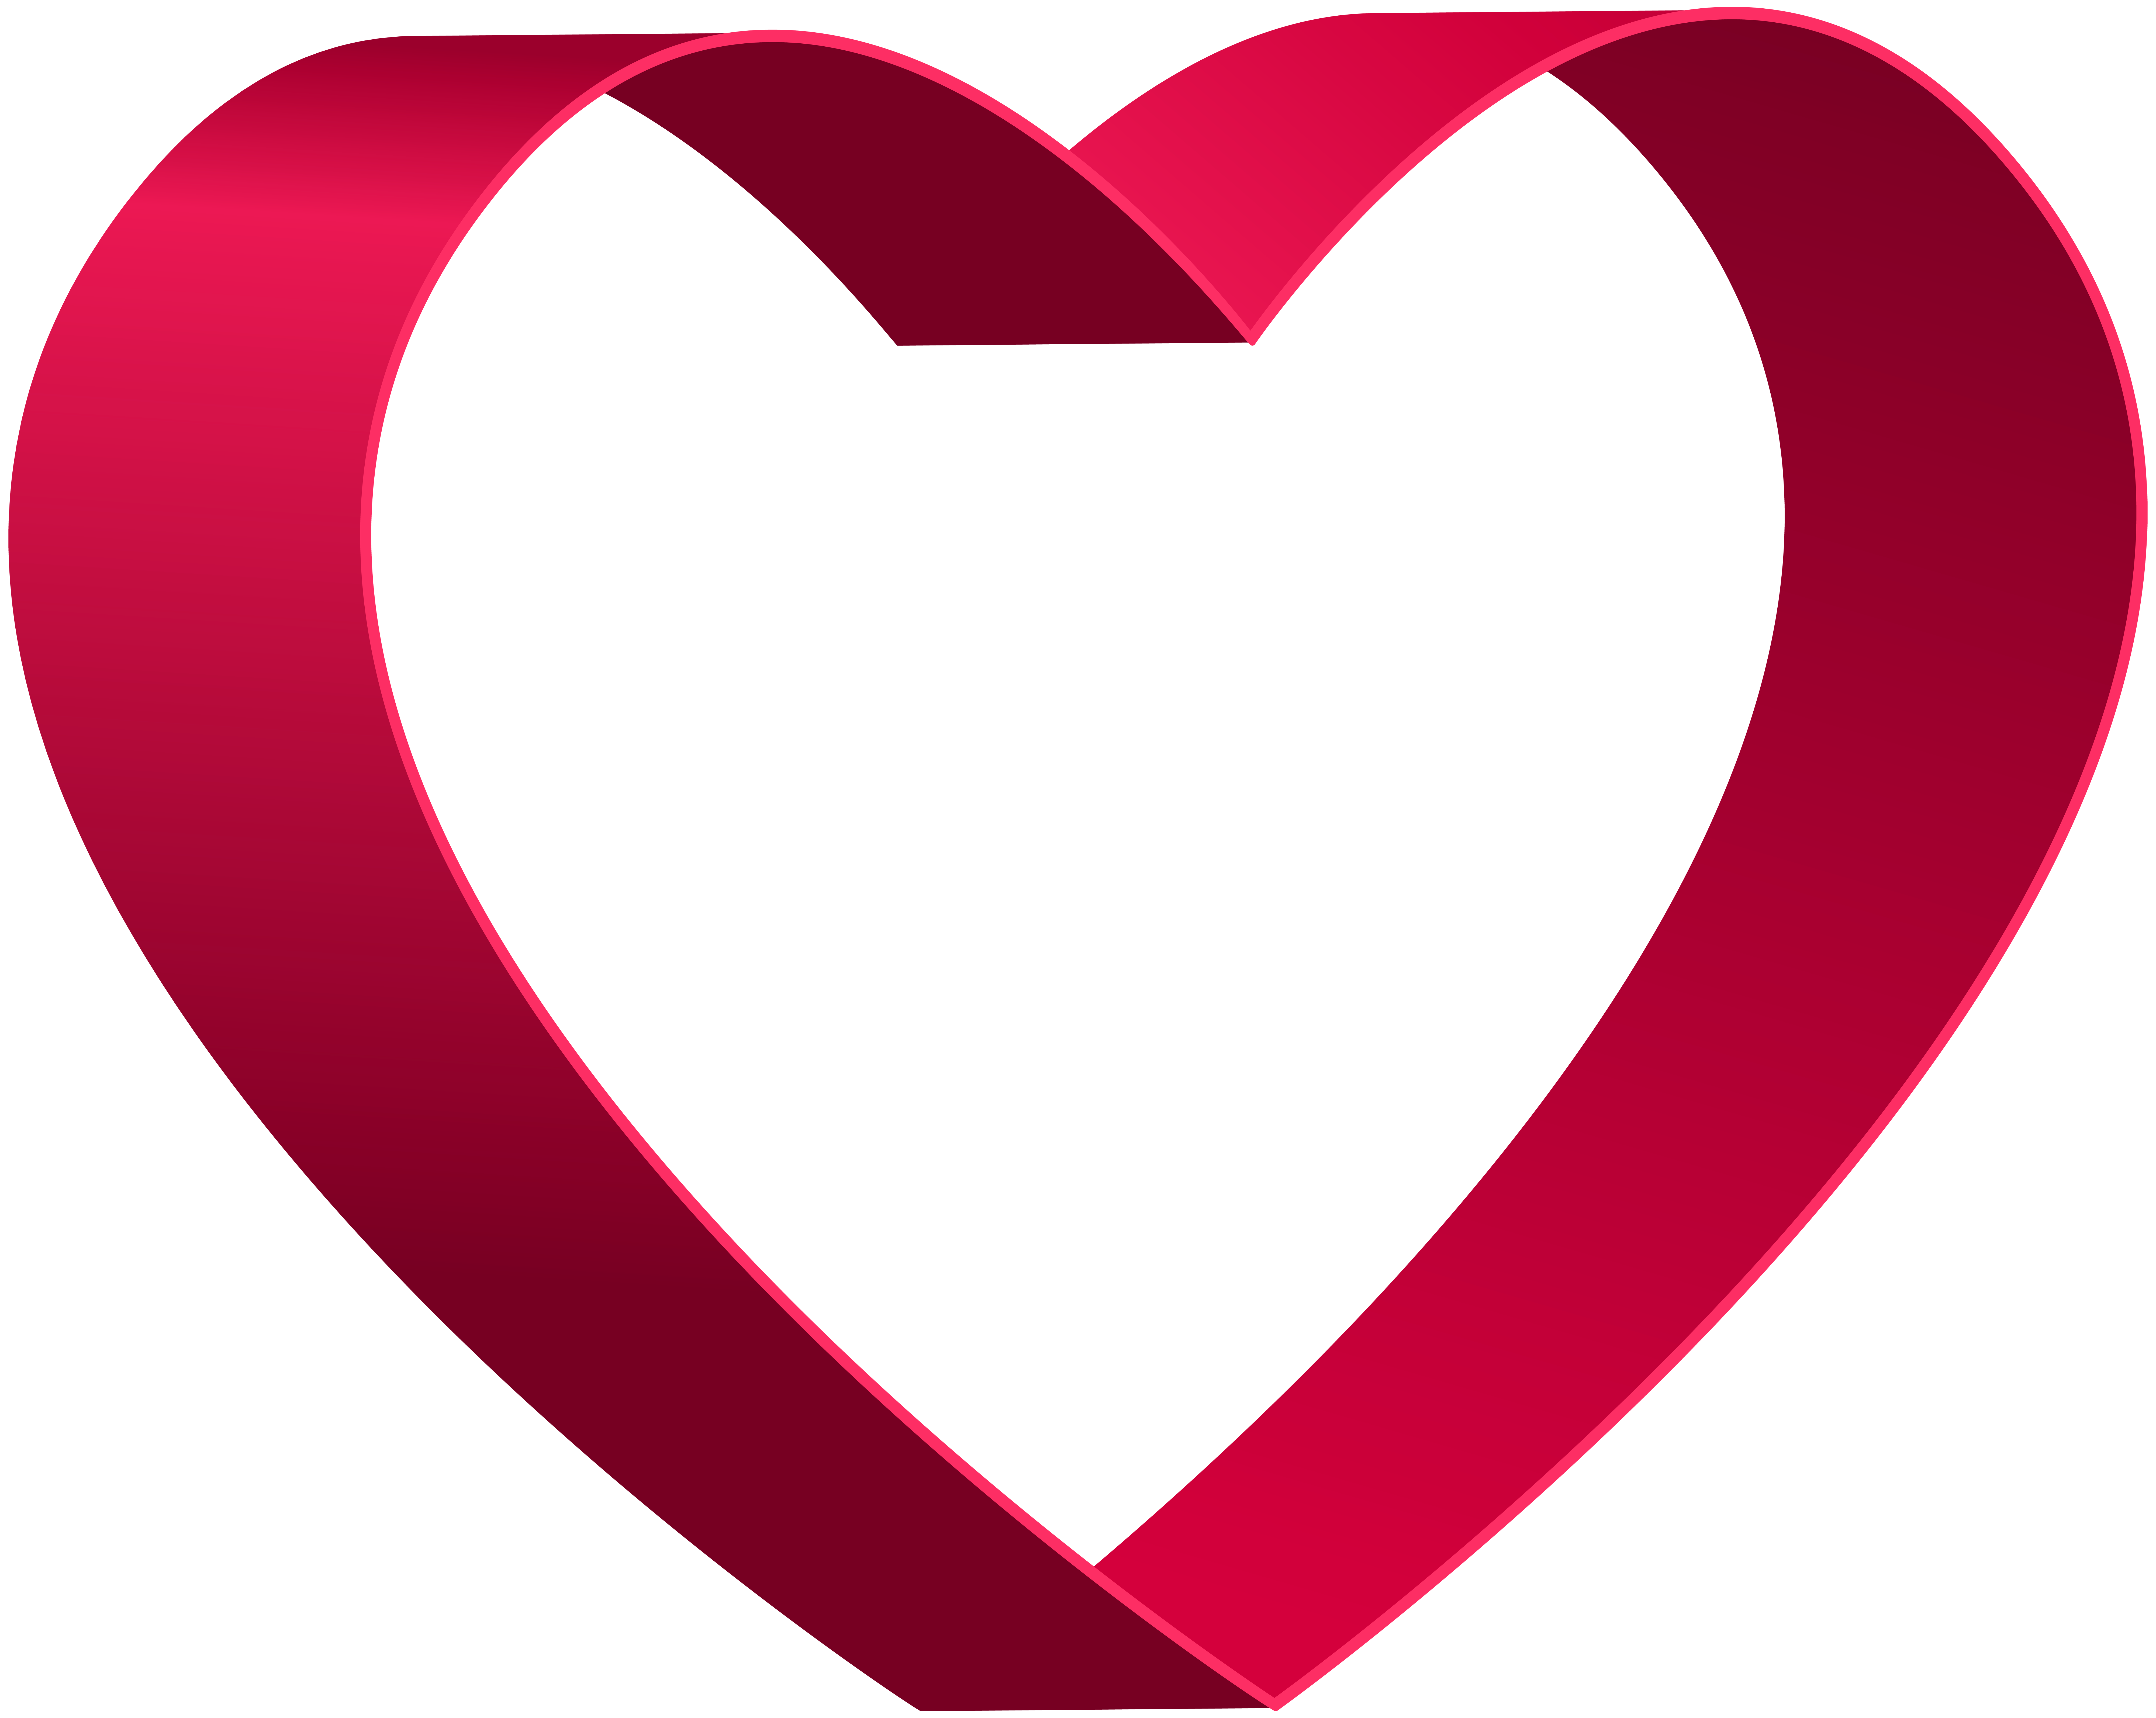 Transparent Heart Shape PNG Clip Art.